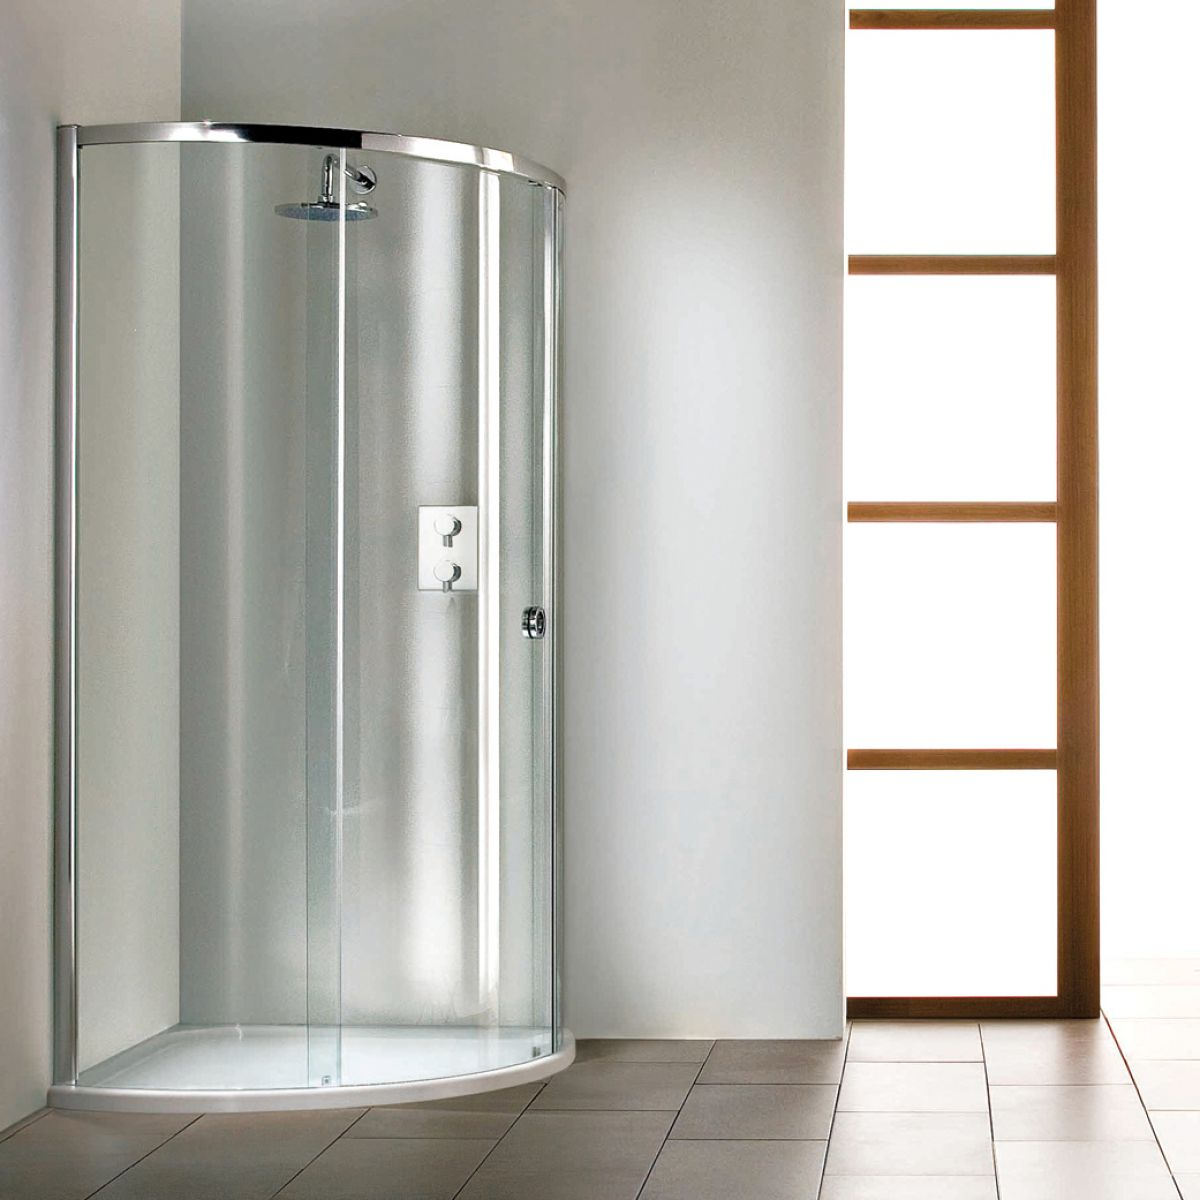 Matki Radiance Curved Surround with Slimline Shower Tray